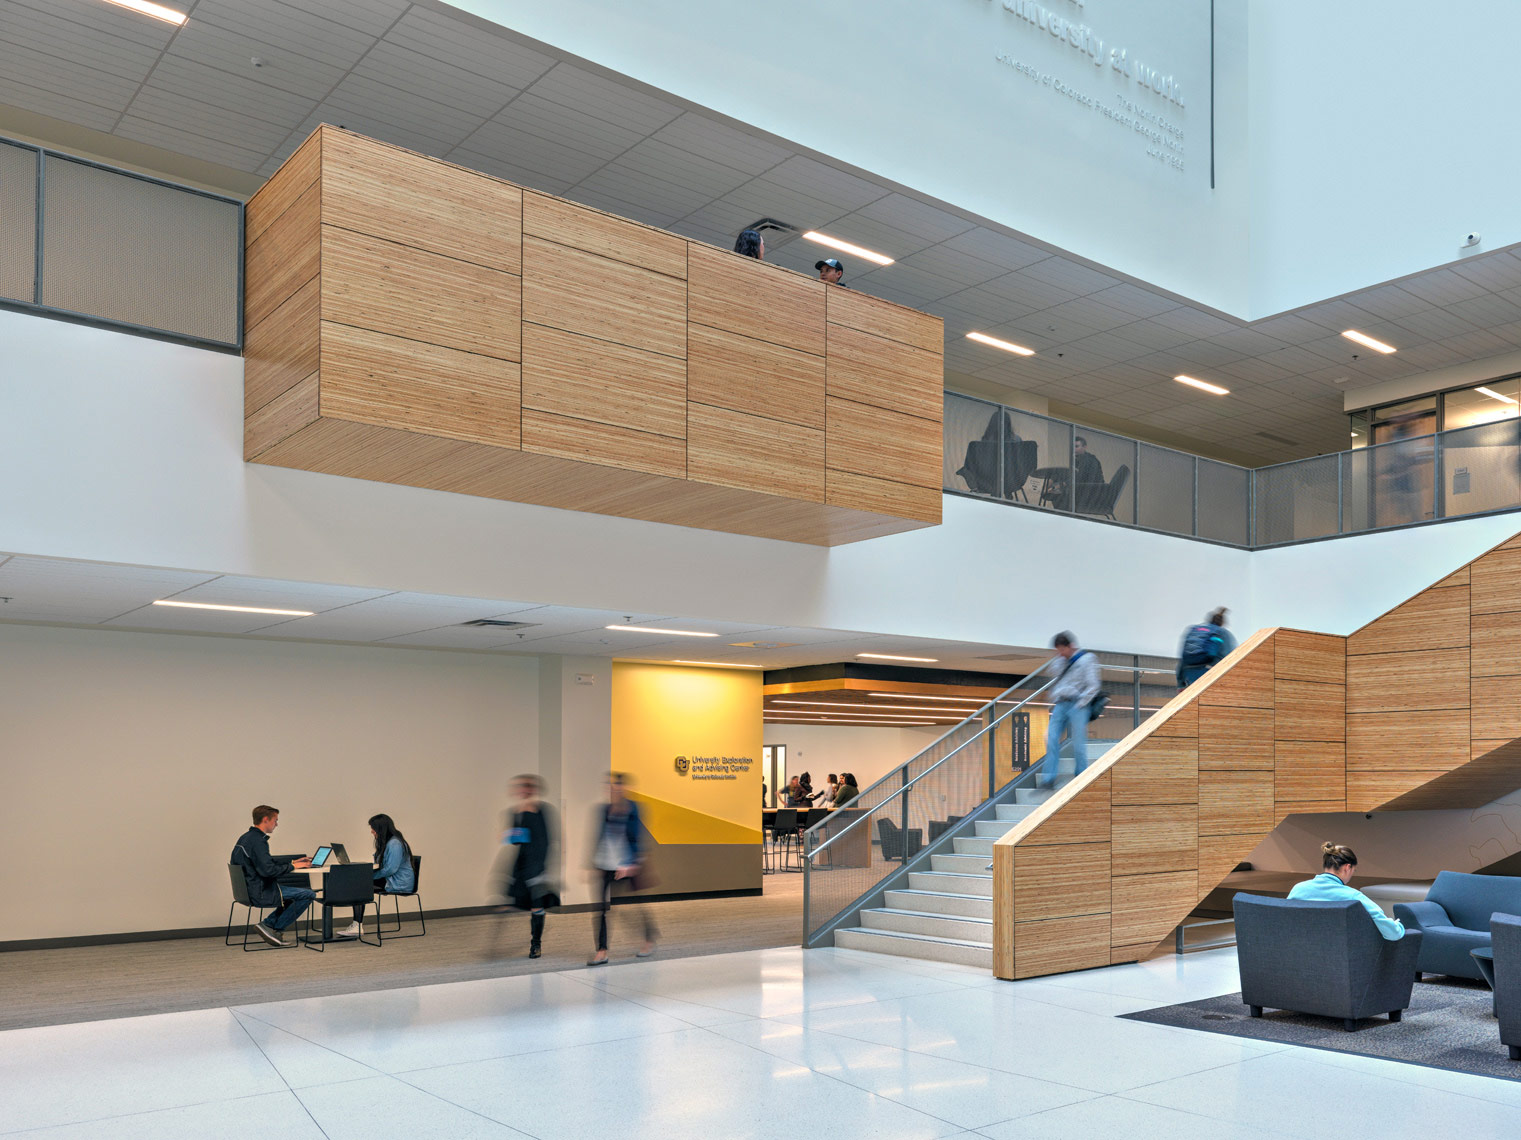 University of Colorado, Boulder | Maylone Architectural Photo